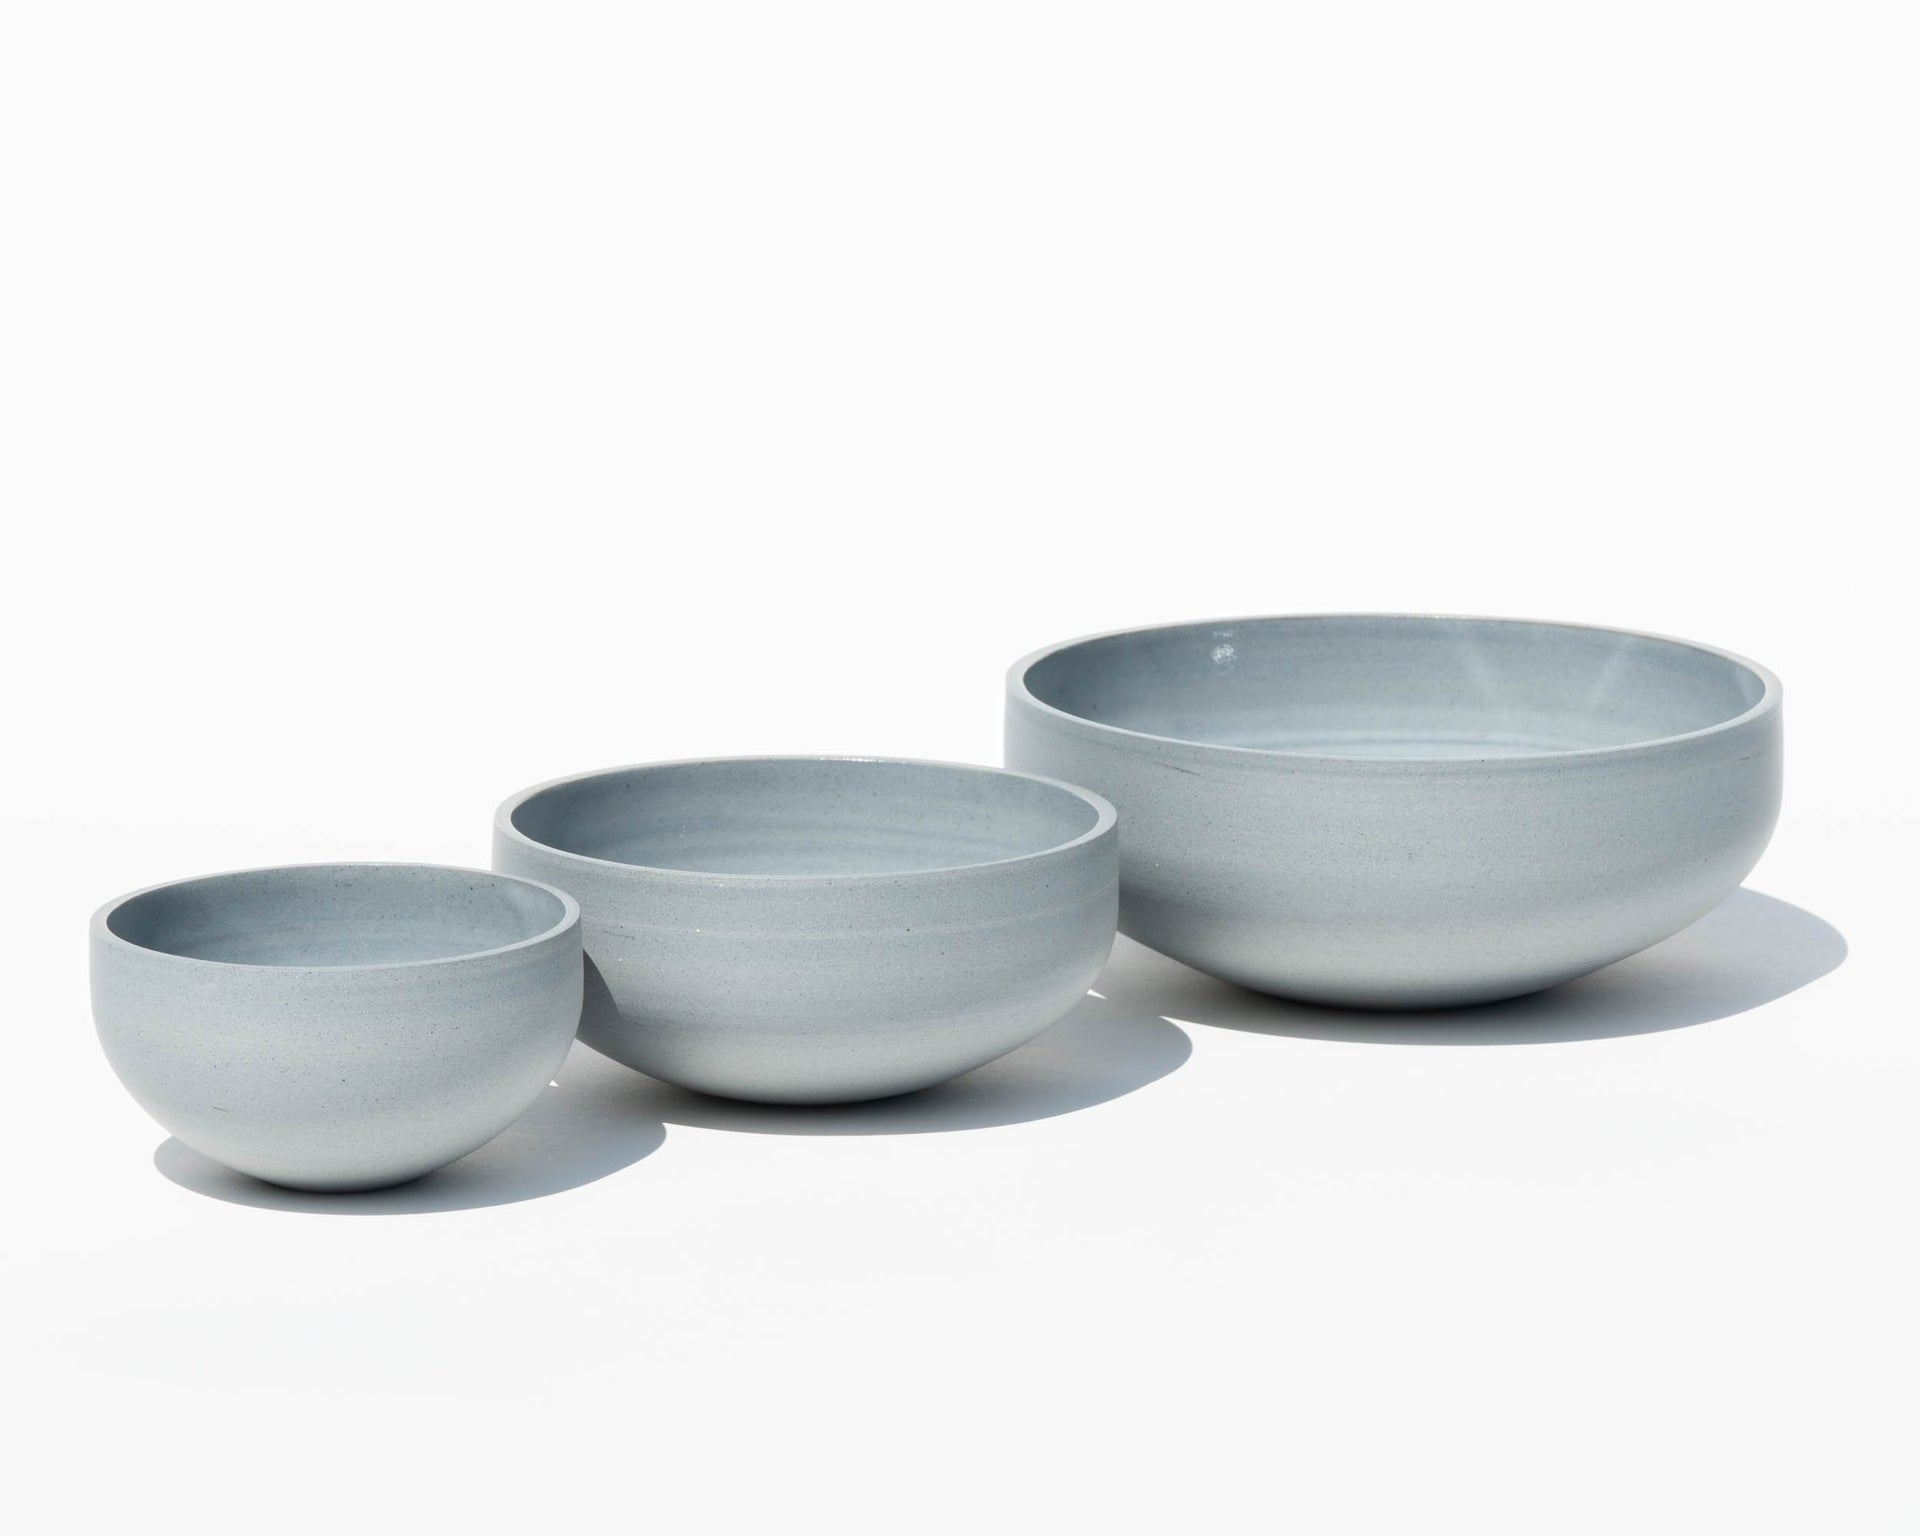 Trio of Porcelain Bowls - Blue